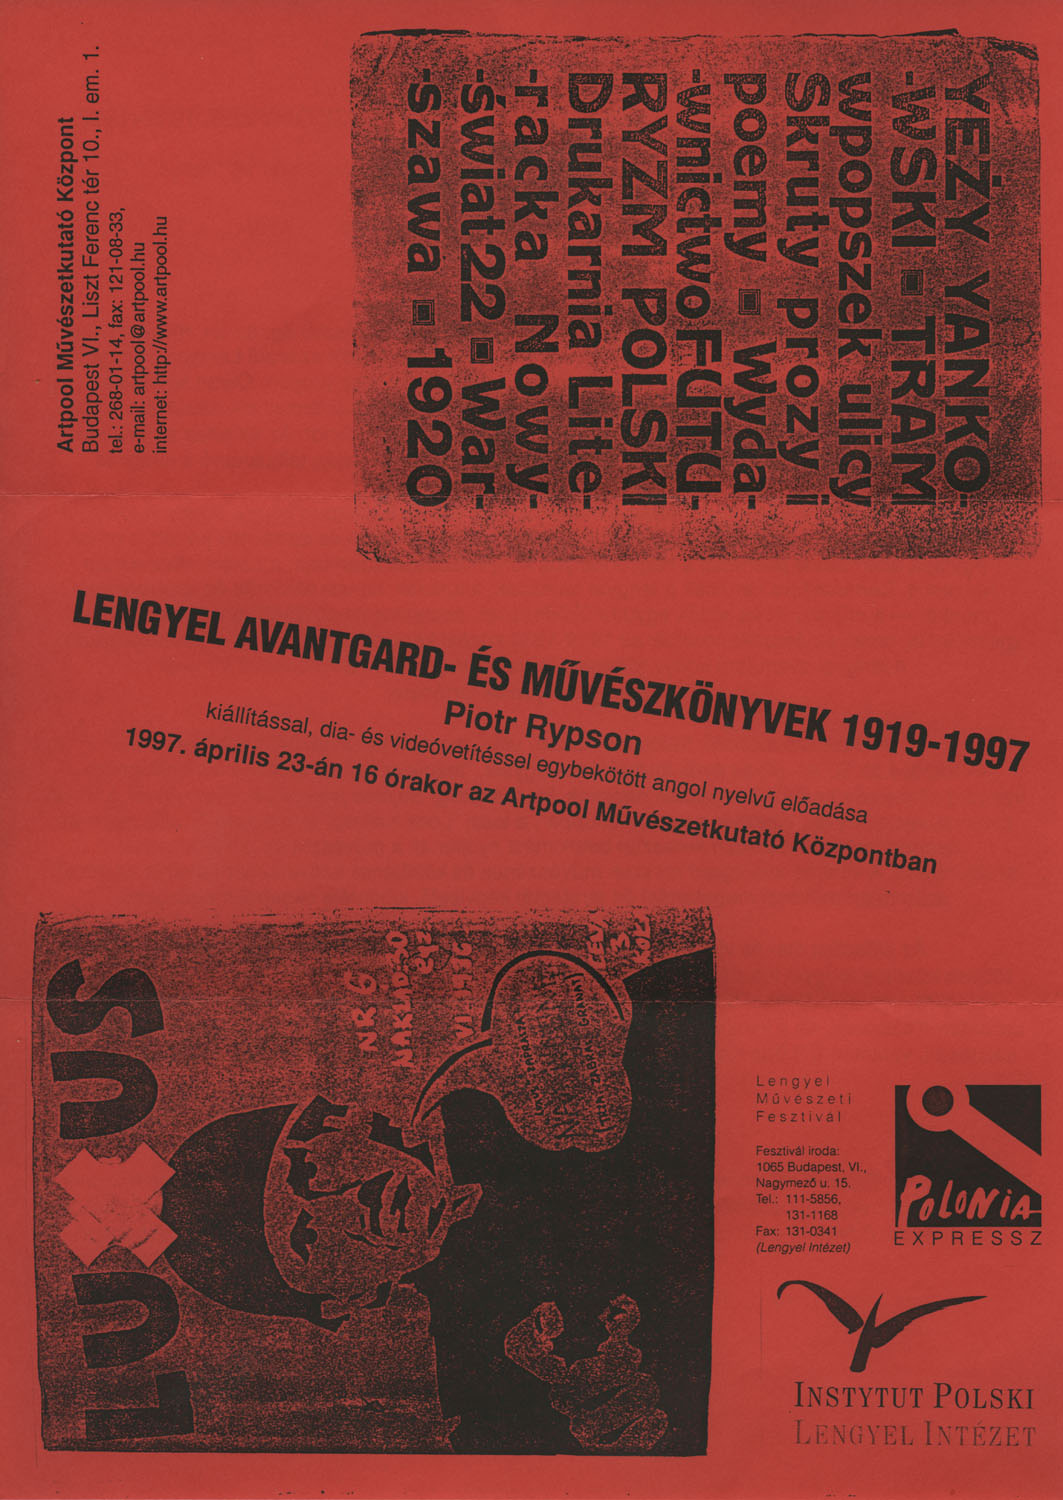 Invitation  for  Avantgarde and Artists' Books in Poland 1919-1997, lecture by Piotr Rypson (1st and 2nd page)